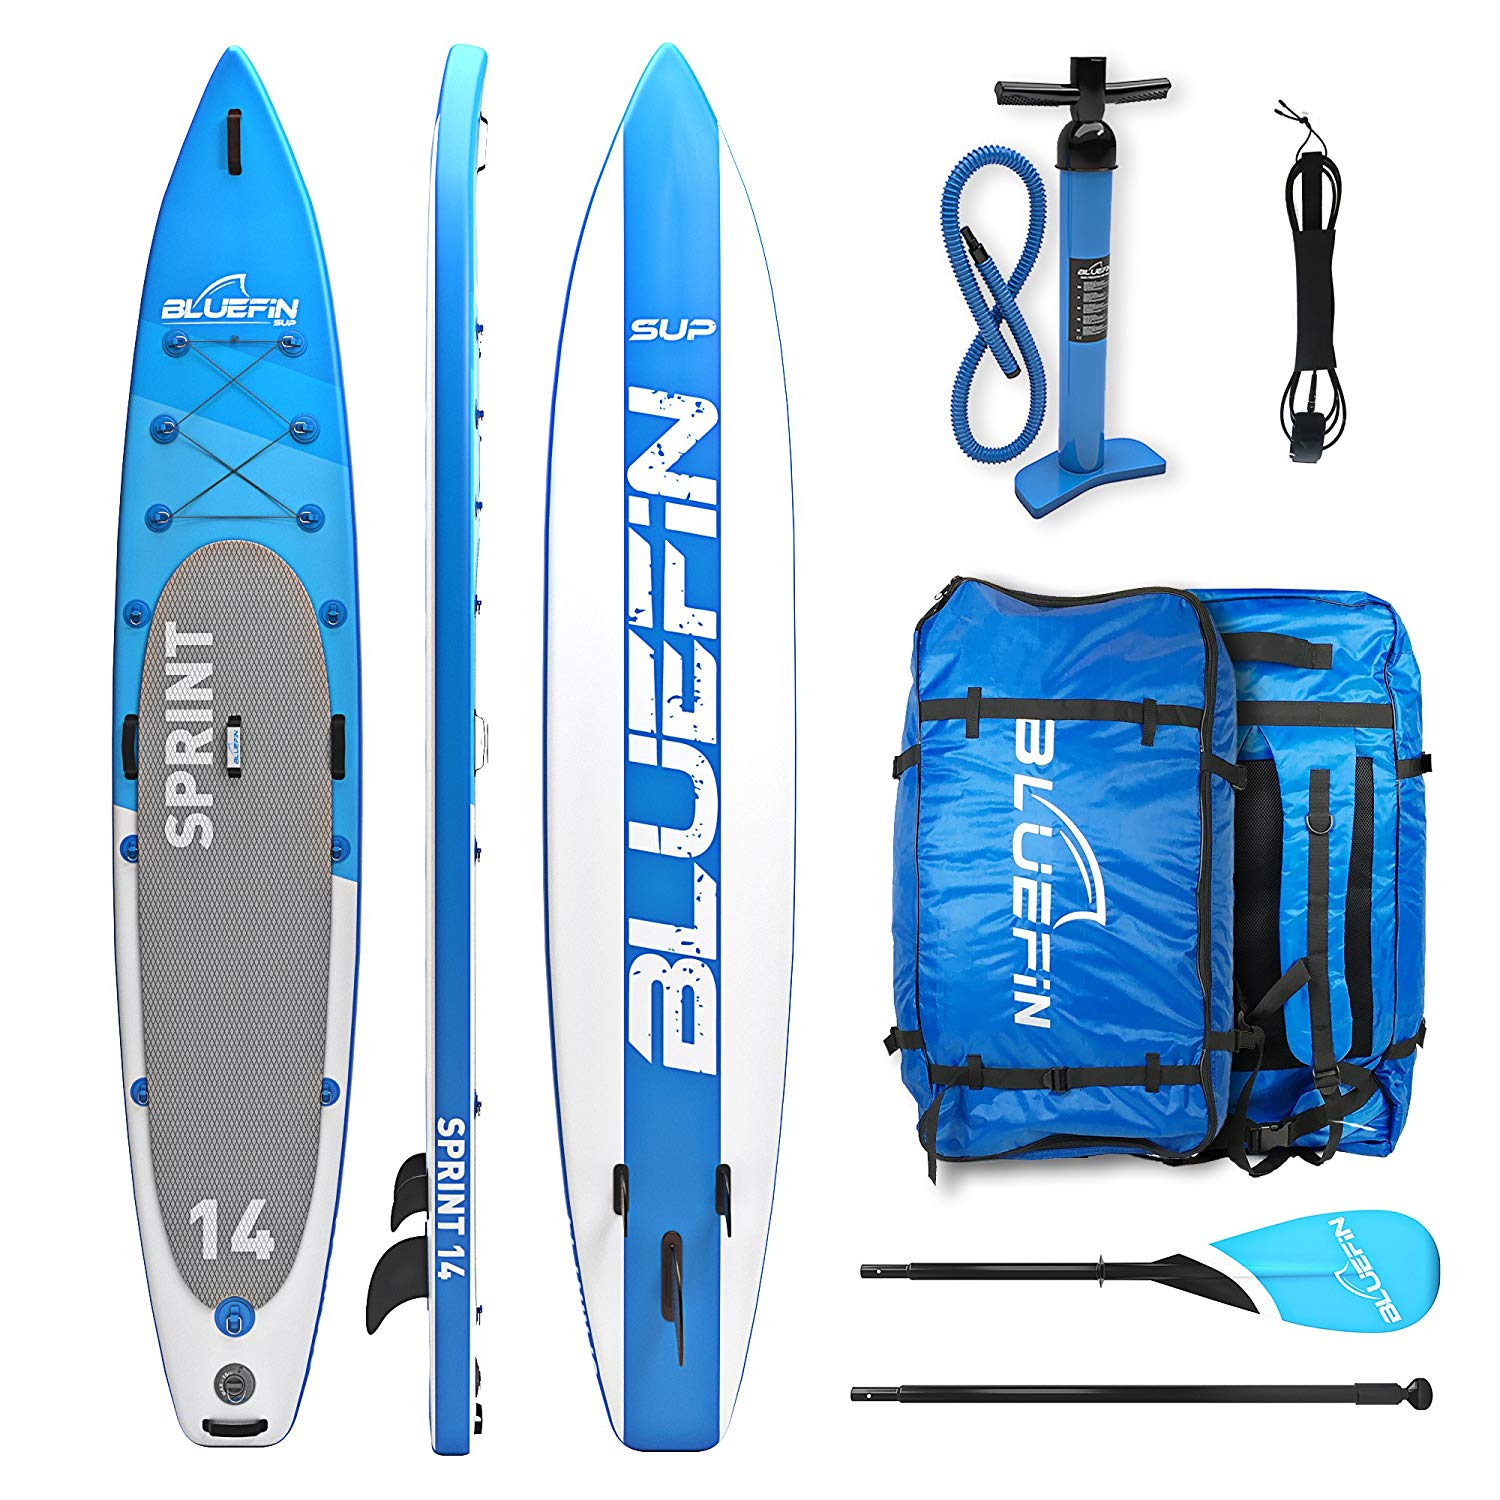 Bluefin 14' Sprint package with backpack, pump and paddle.